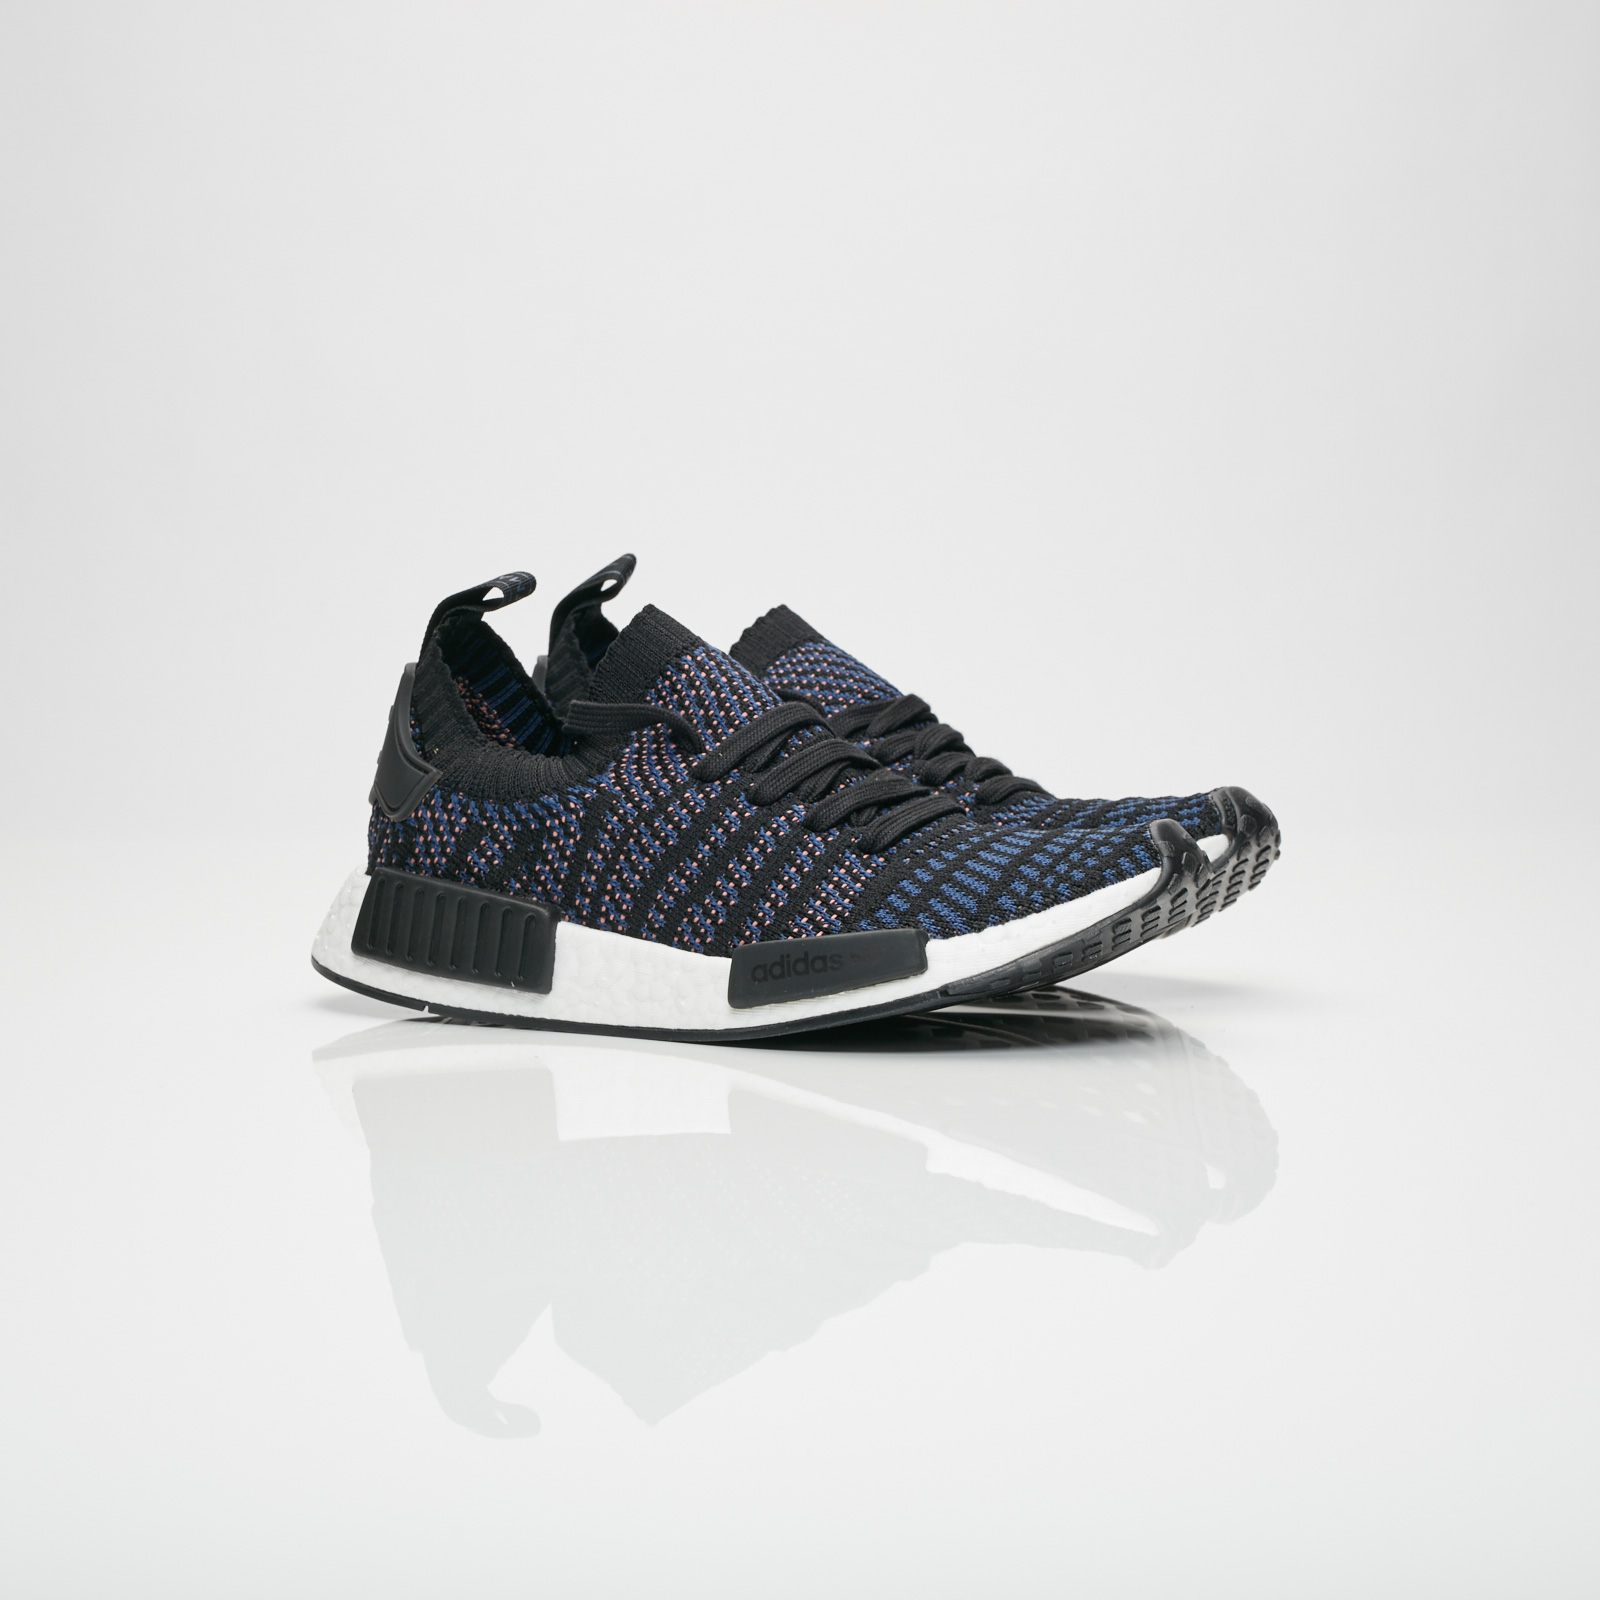 Nmd R1 Sneakers W Adidas Sneakersnstuff Pk Stlt Ac8326 ASwfdq